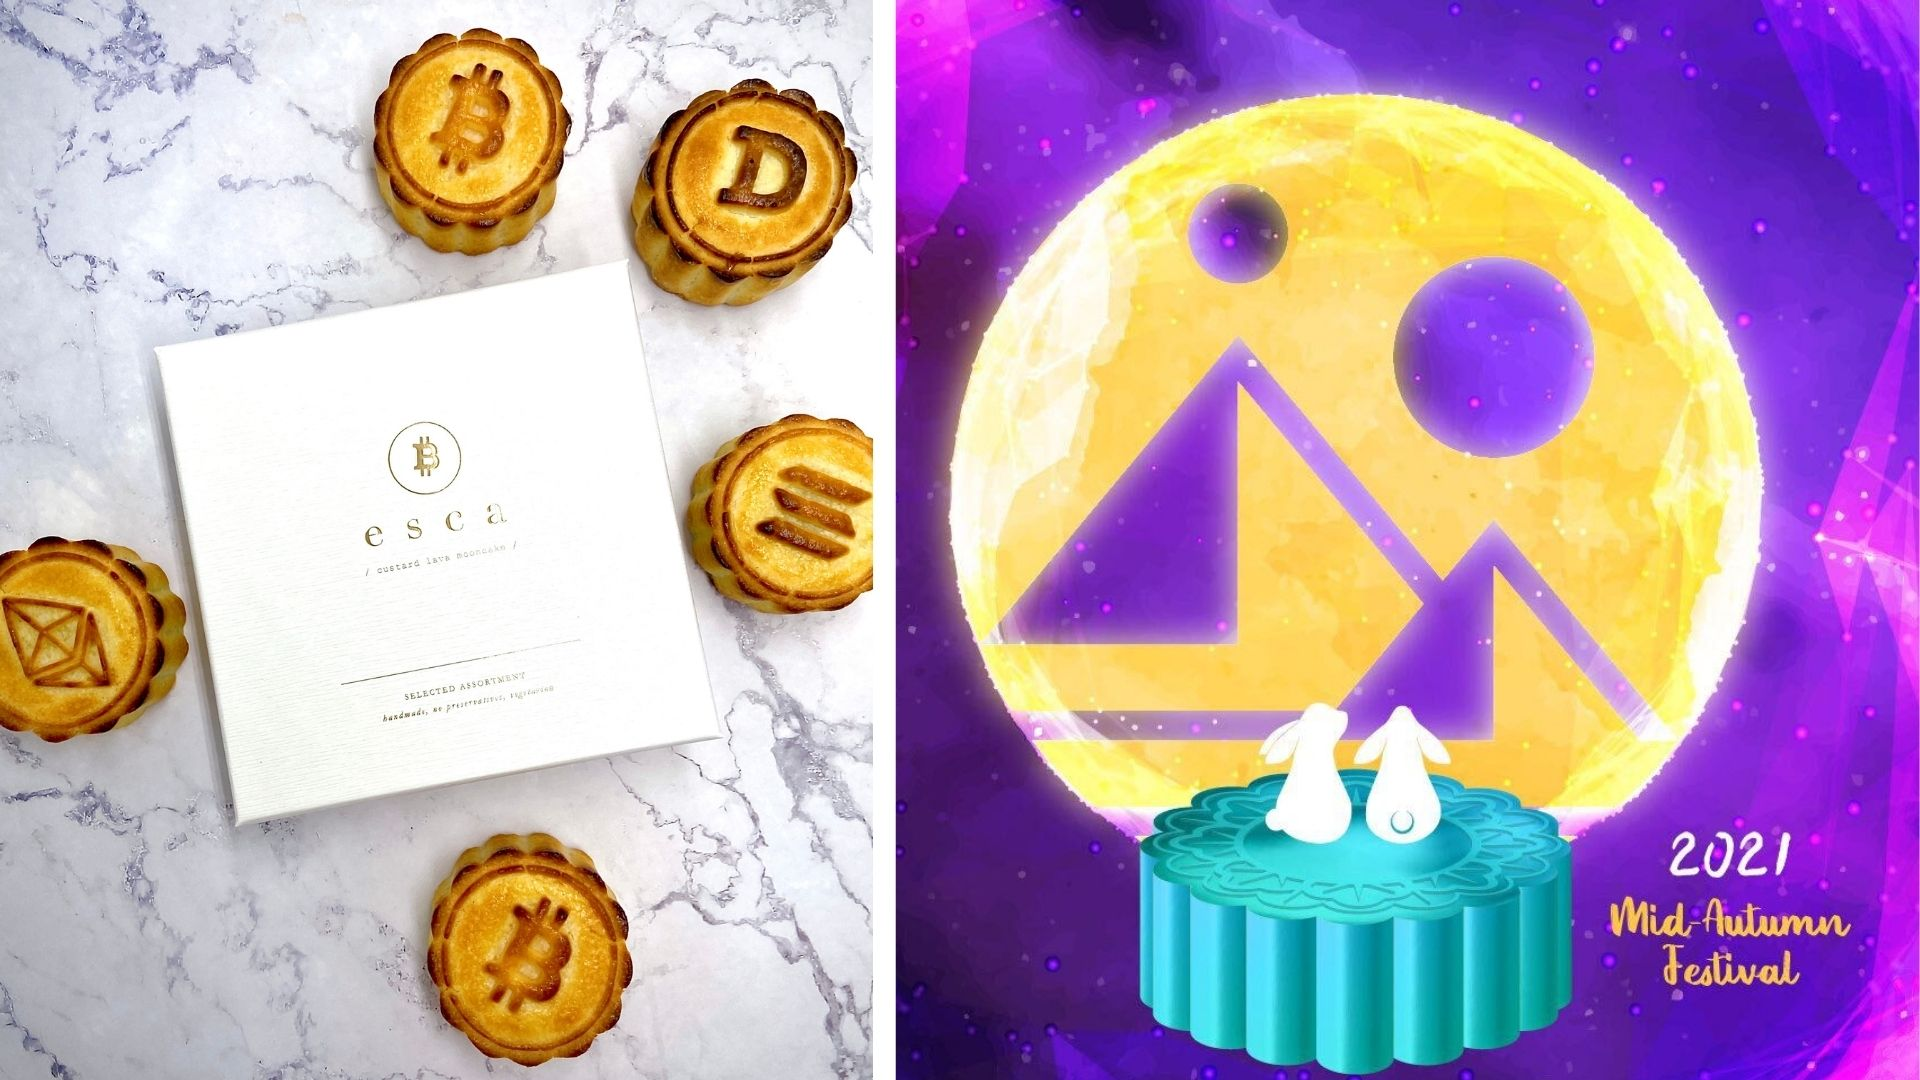 How crypto enthusiasts in Asia are celebrating the Mid-Autumn Festival this year